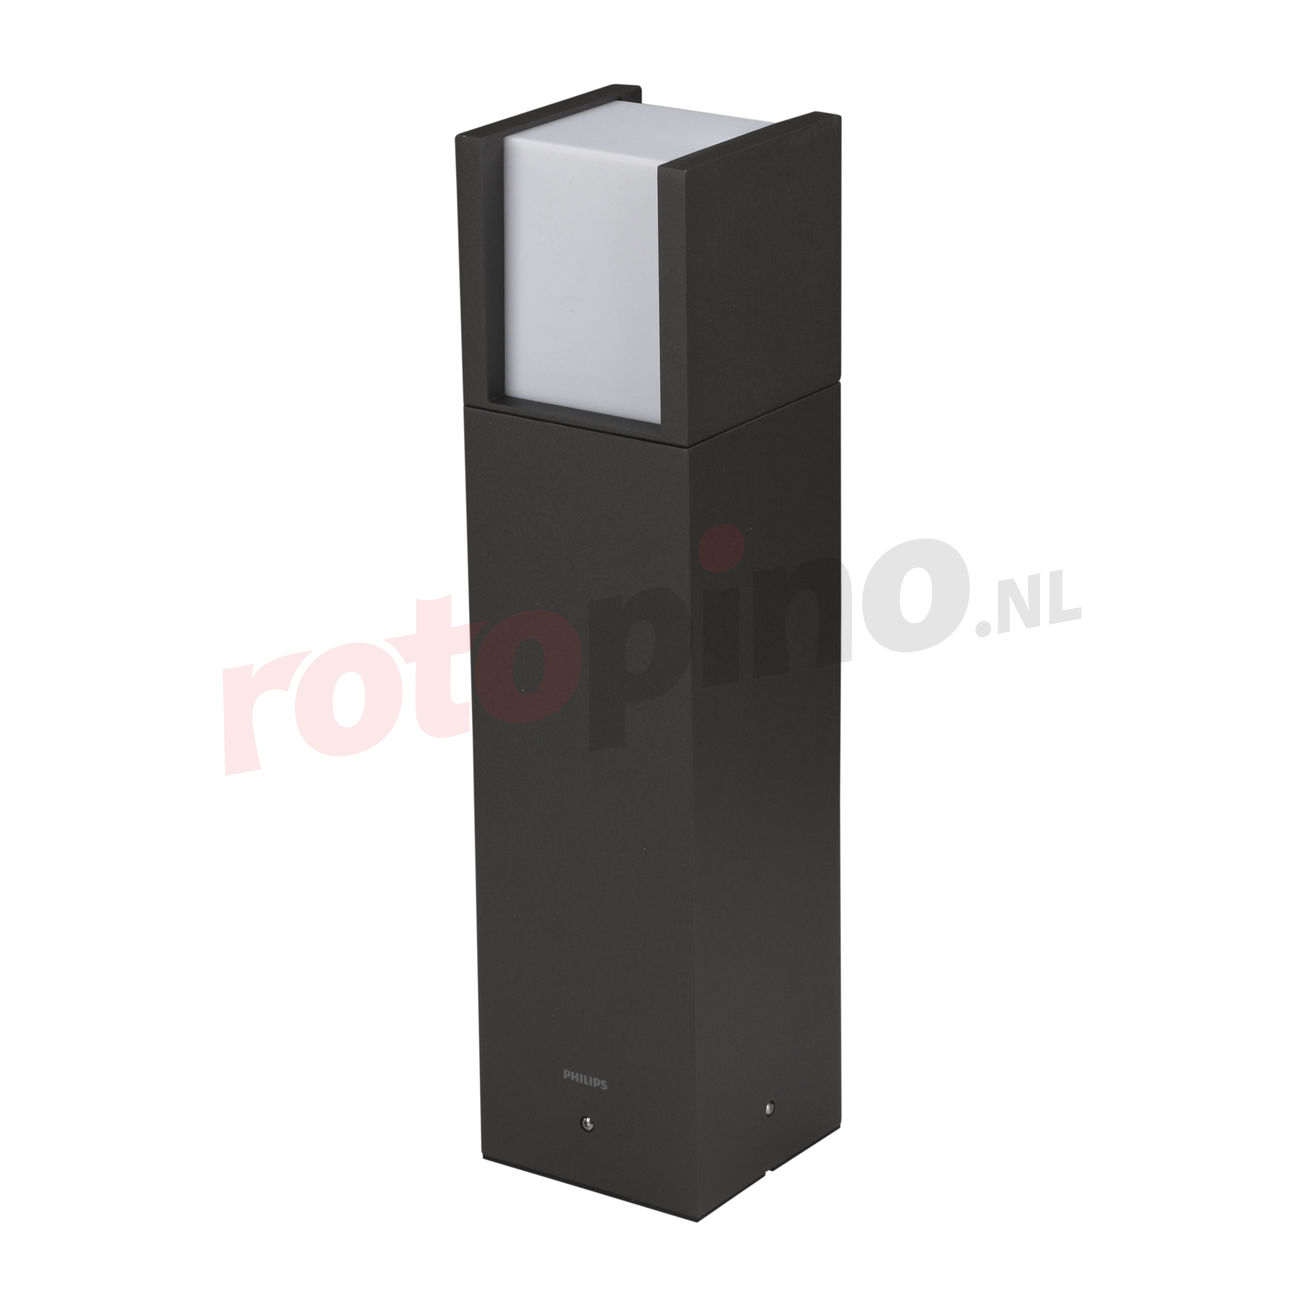 Philips Buitenlamp Staande Buitenlamp Led Arbour Philips 1646293p3